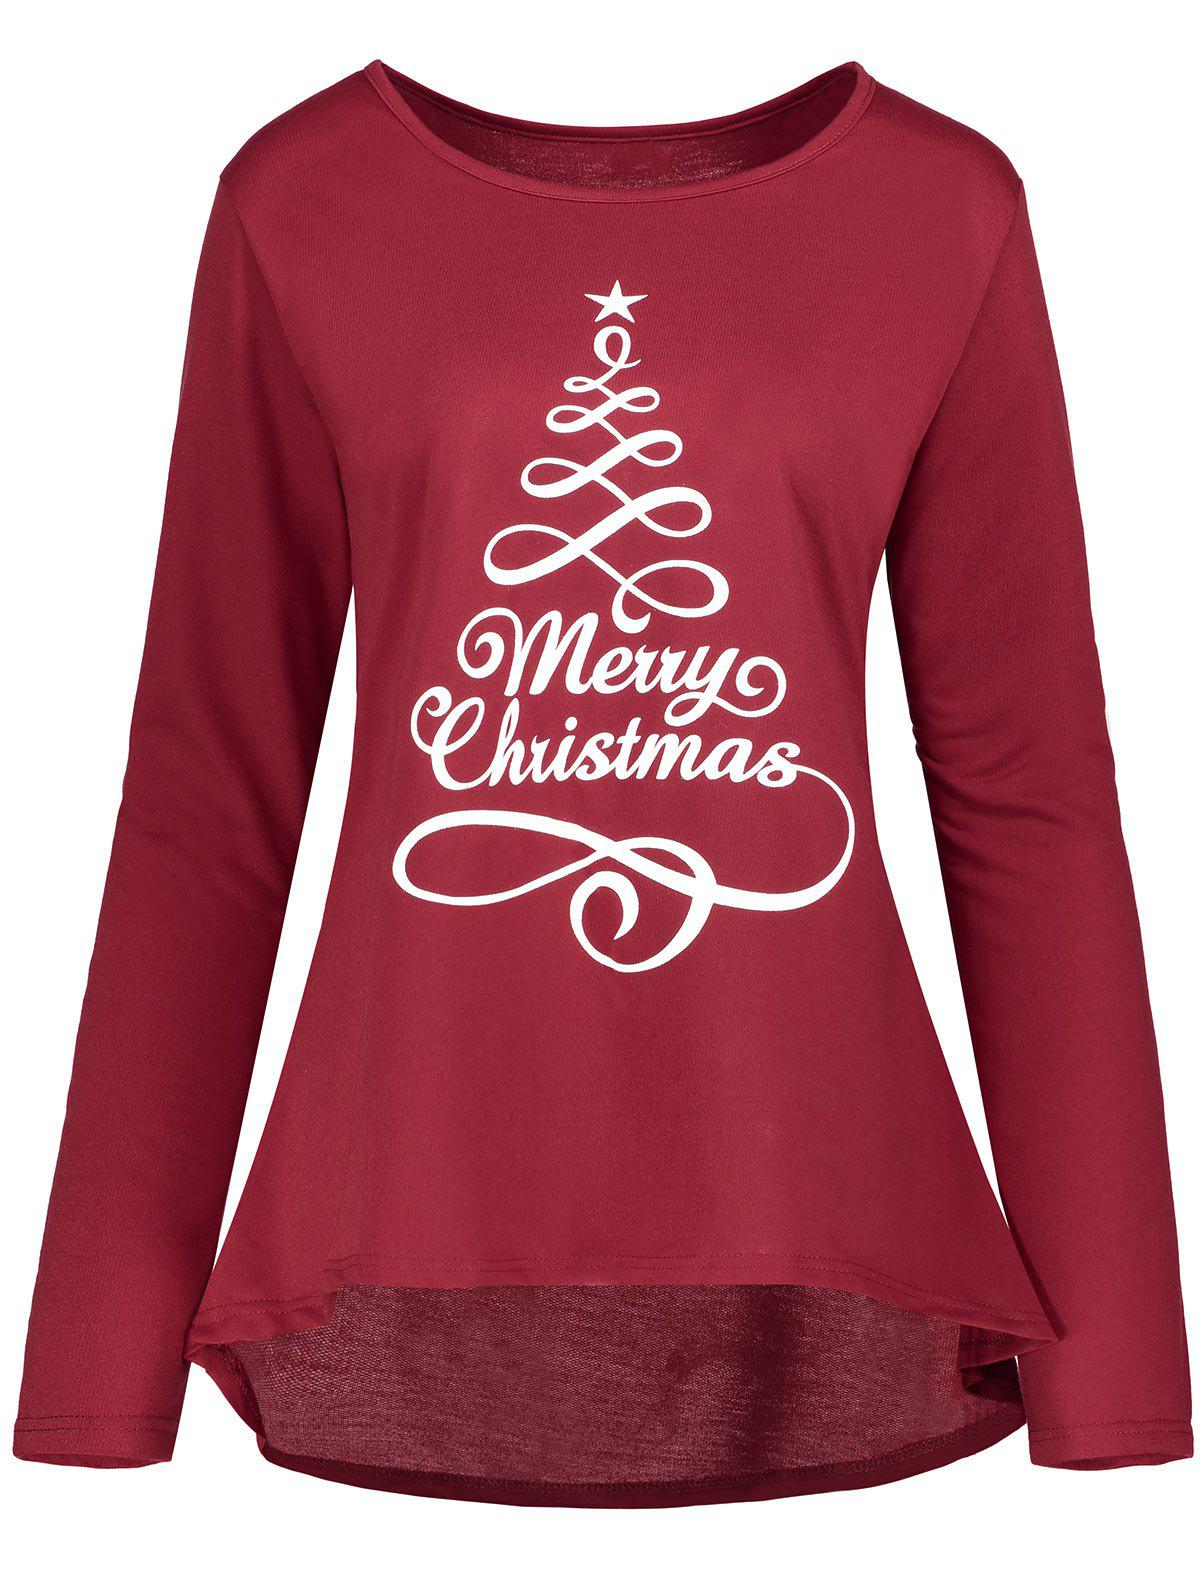 Christmas Star Print Plus Size High Low T-shirtWOMEN<br><br>Size: 3XL; Color: WINE RED; Material: Cotton,Polyester; Shirt Length: Long; Sleeve Length: Full; Collar: Round Neck; Style: Casual; Season: Fall,Spring,Winter; Pattern Type: Letter,Star; Weight: 0.3200kg; Package Contents: 1 x T-shirt;